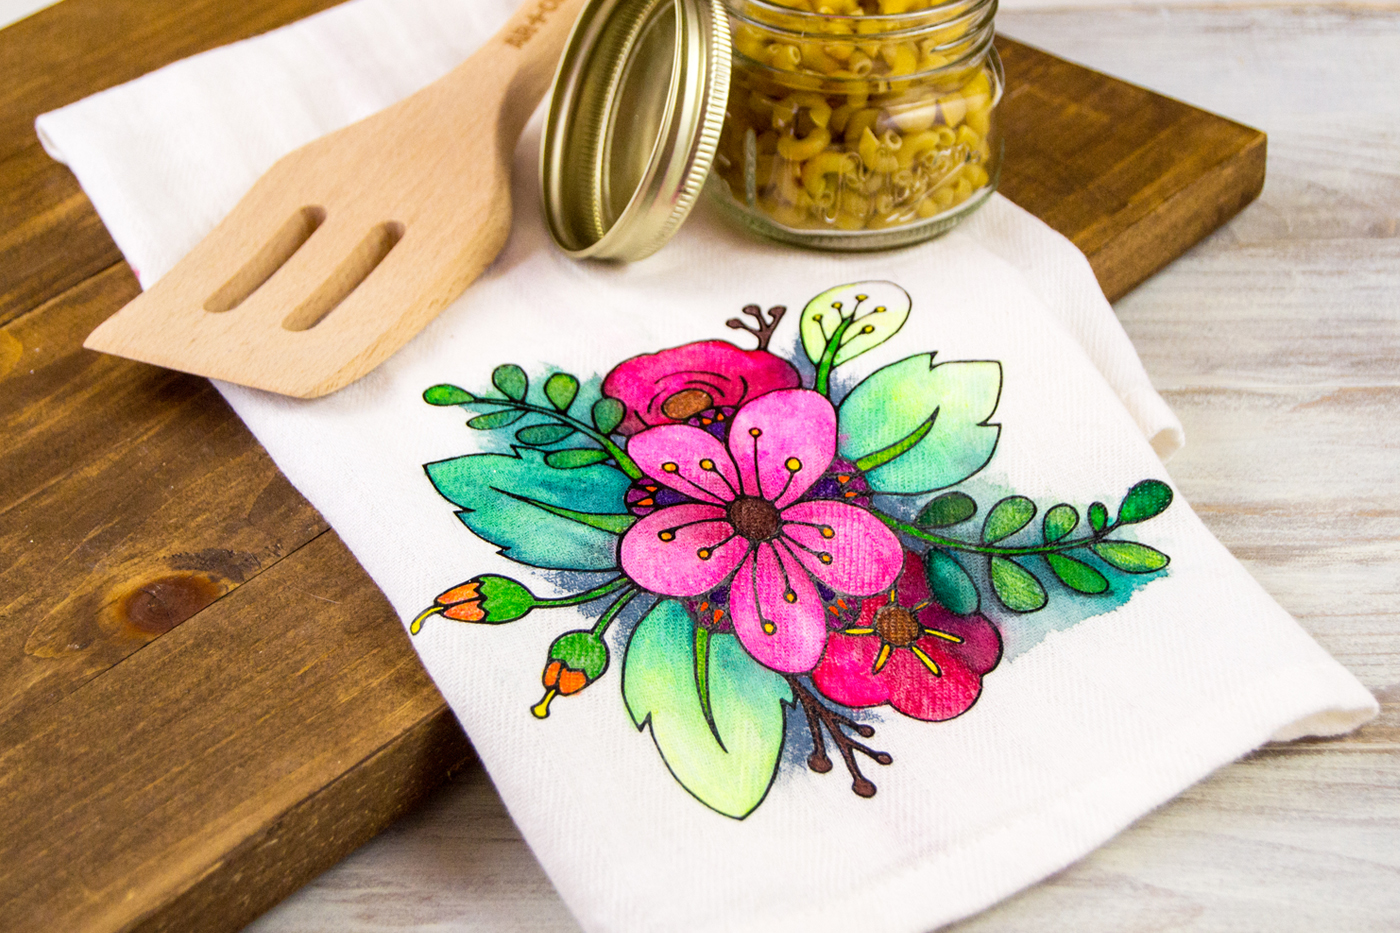 Floral Coloring Book Styled DIY Tea Towel - DIY Candy